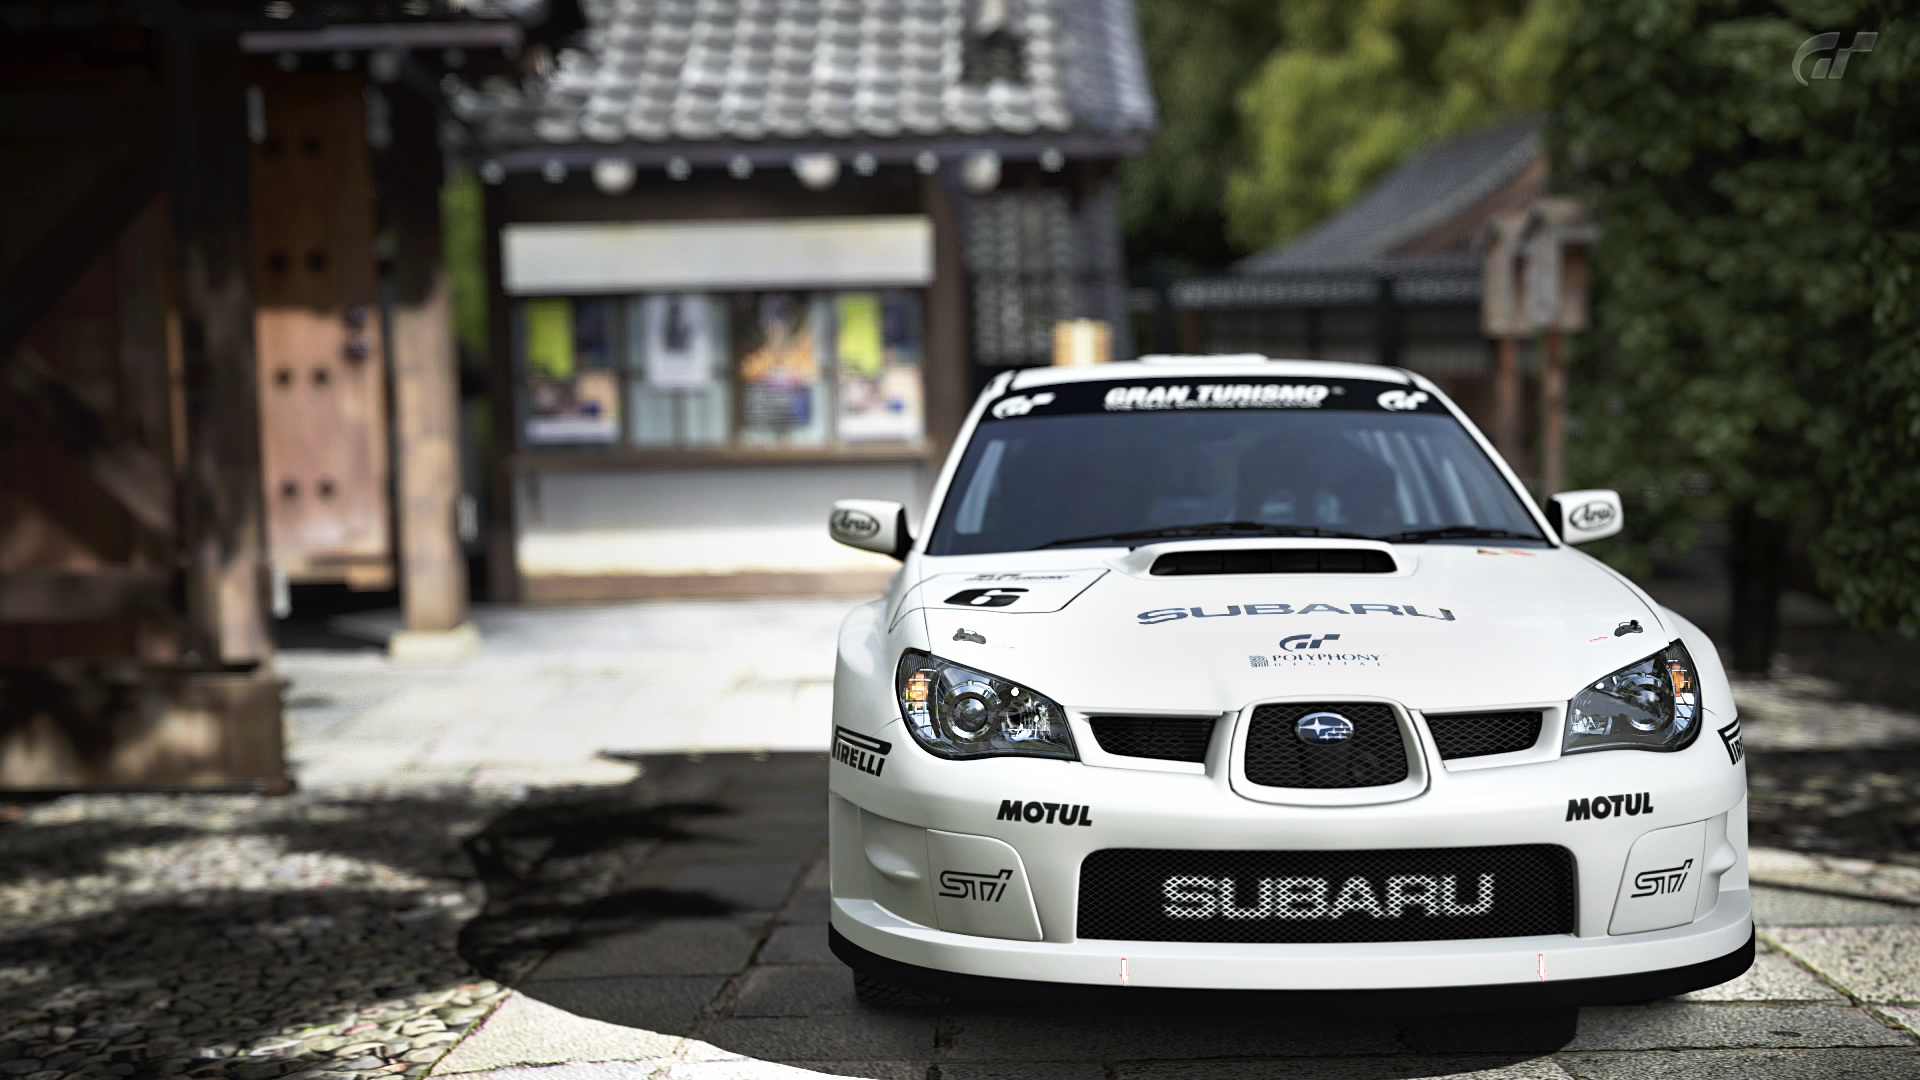 Cool Modified Cars Wallpapers Subaru Hd Backgrounds Pixelstalk Net